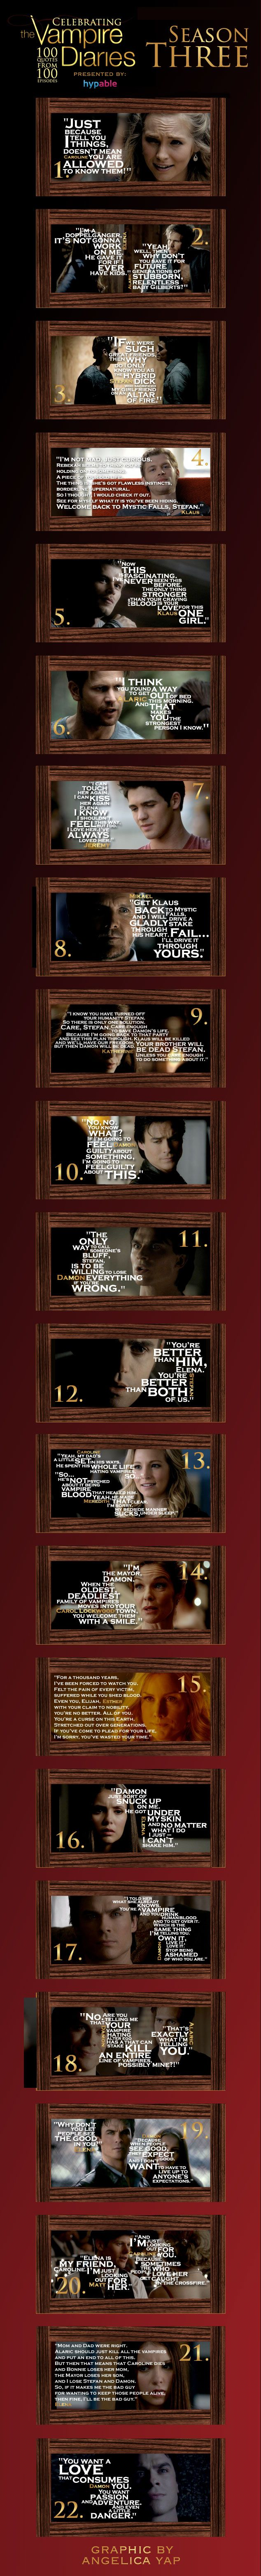 'The Vampire Diaries' quotes: The best of season 3